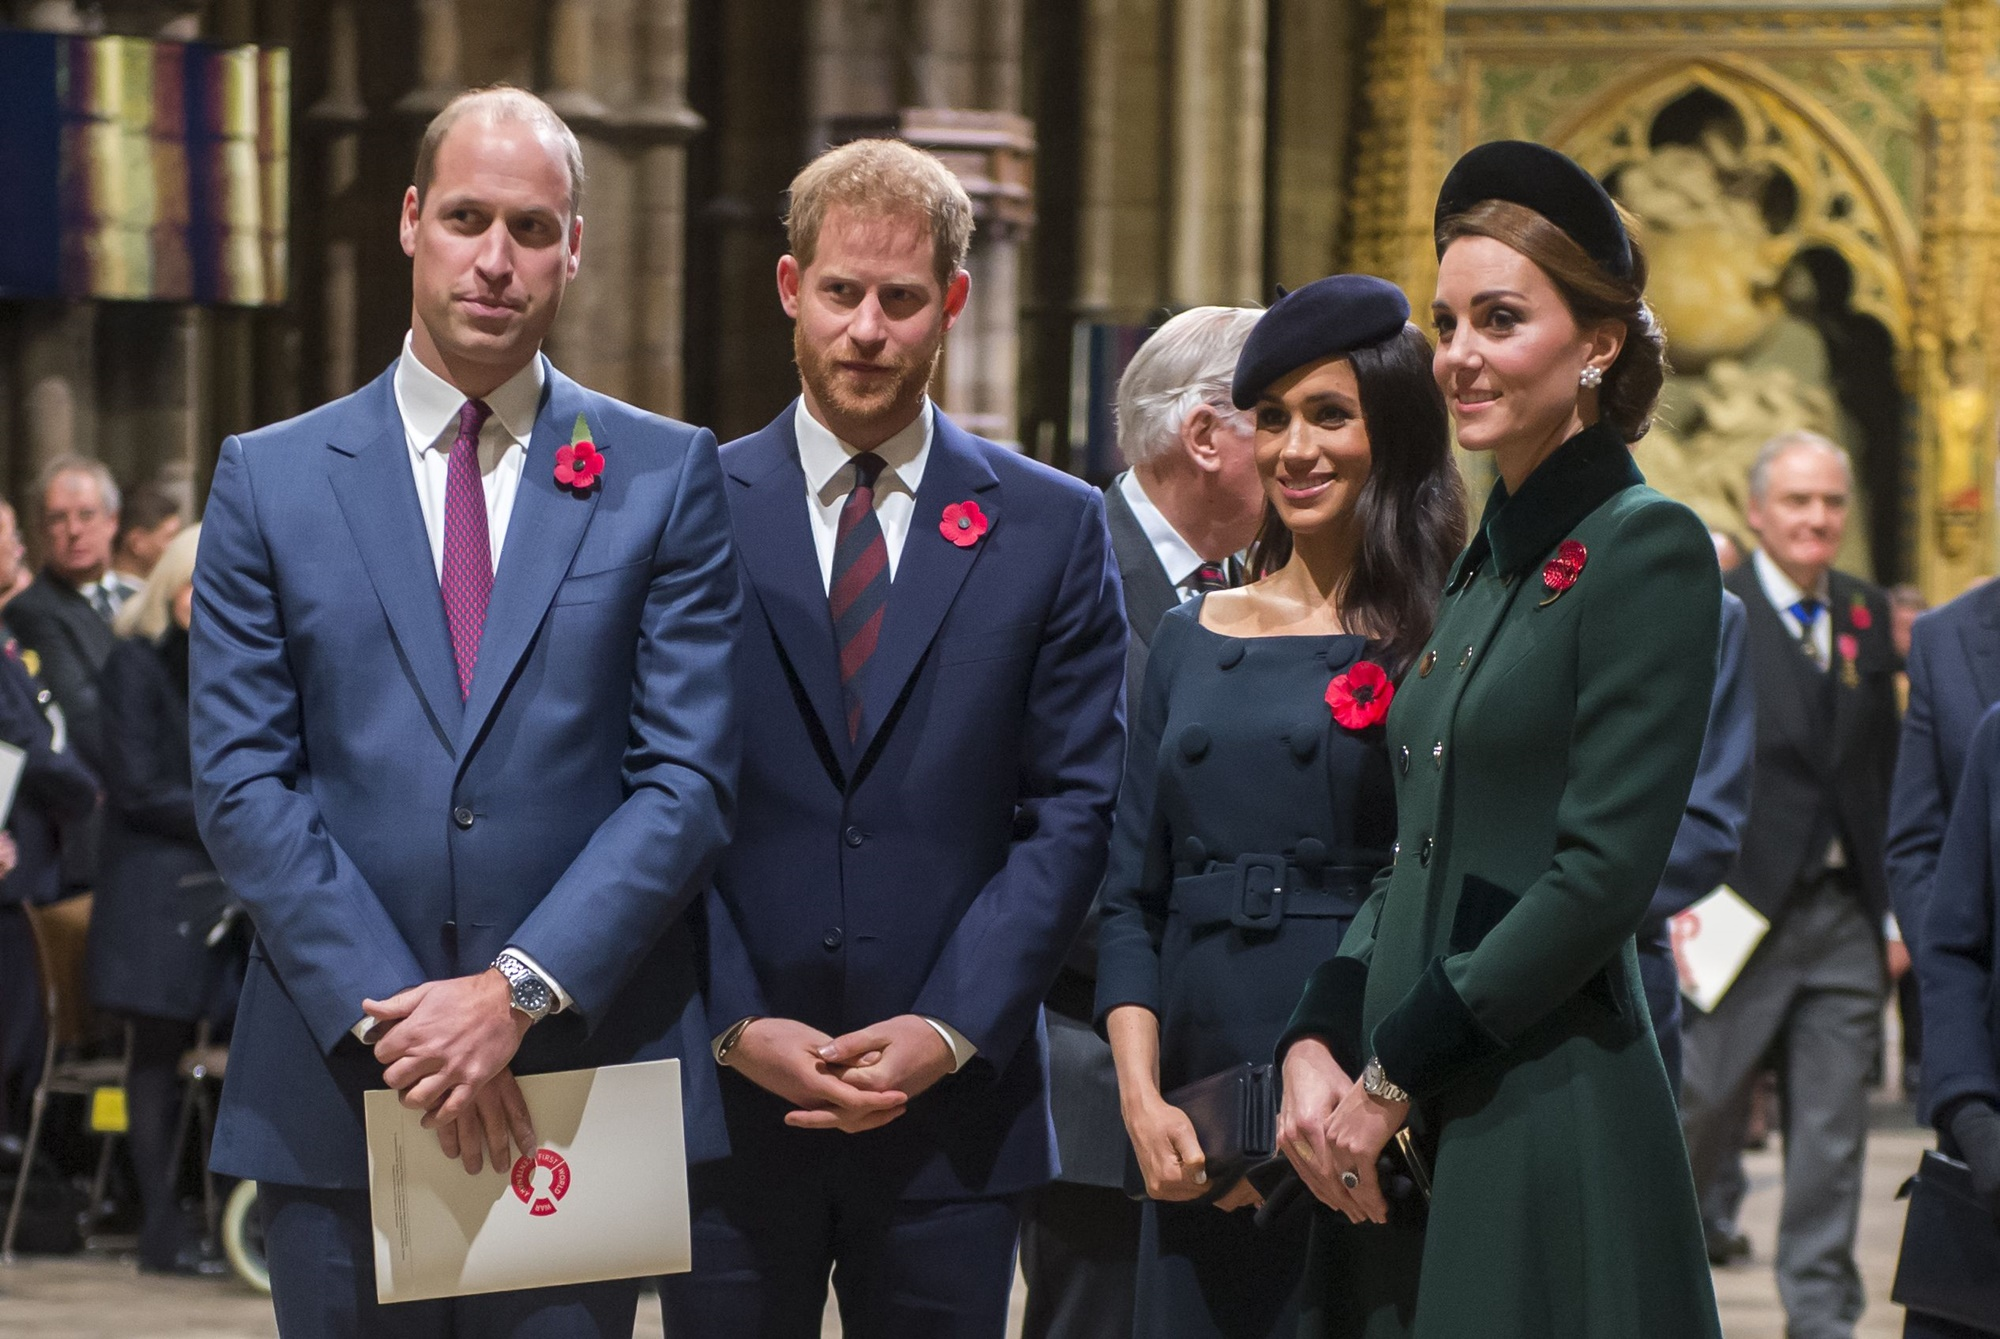 amid-cheating-rumors-involving-kate-middletons-friend-rose-hanbury-prince-william-still-has-not-totally-made-peace-with-prince-harry-over-meghan-markle